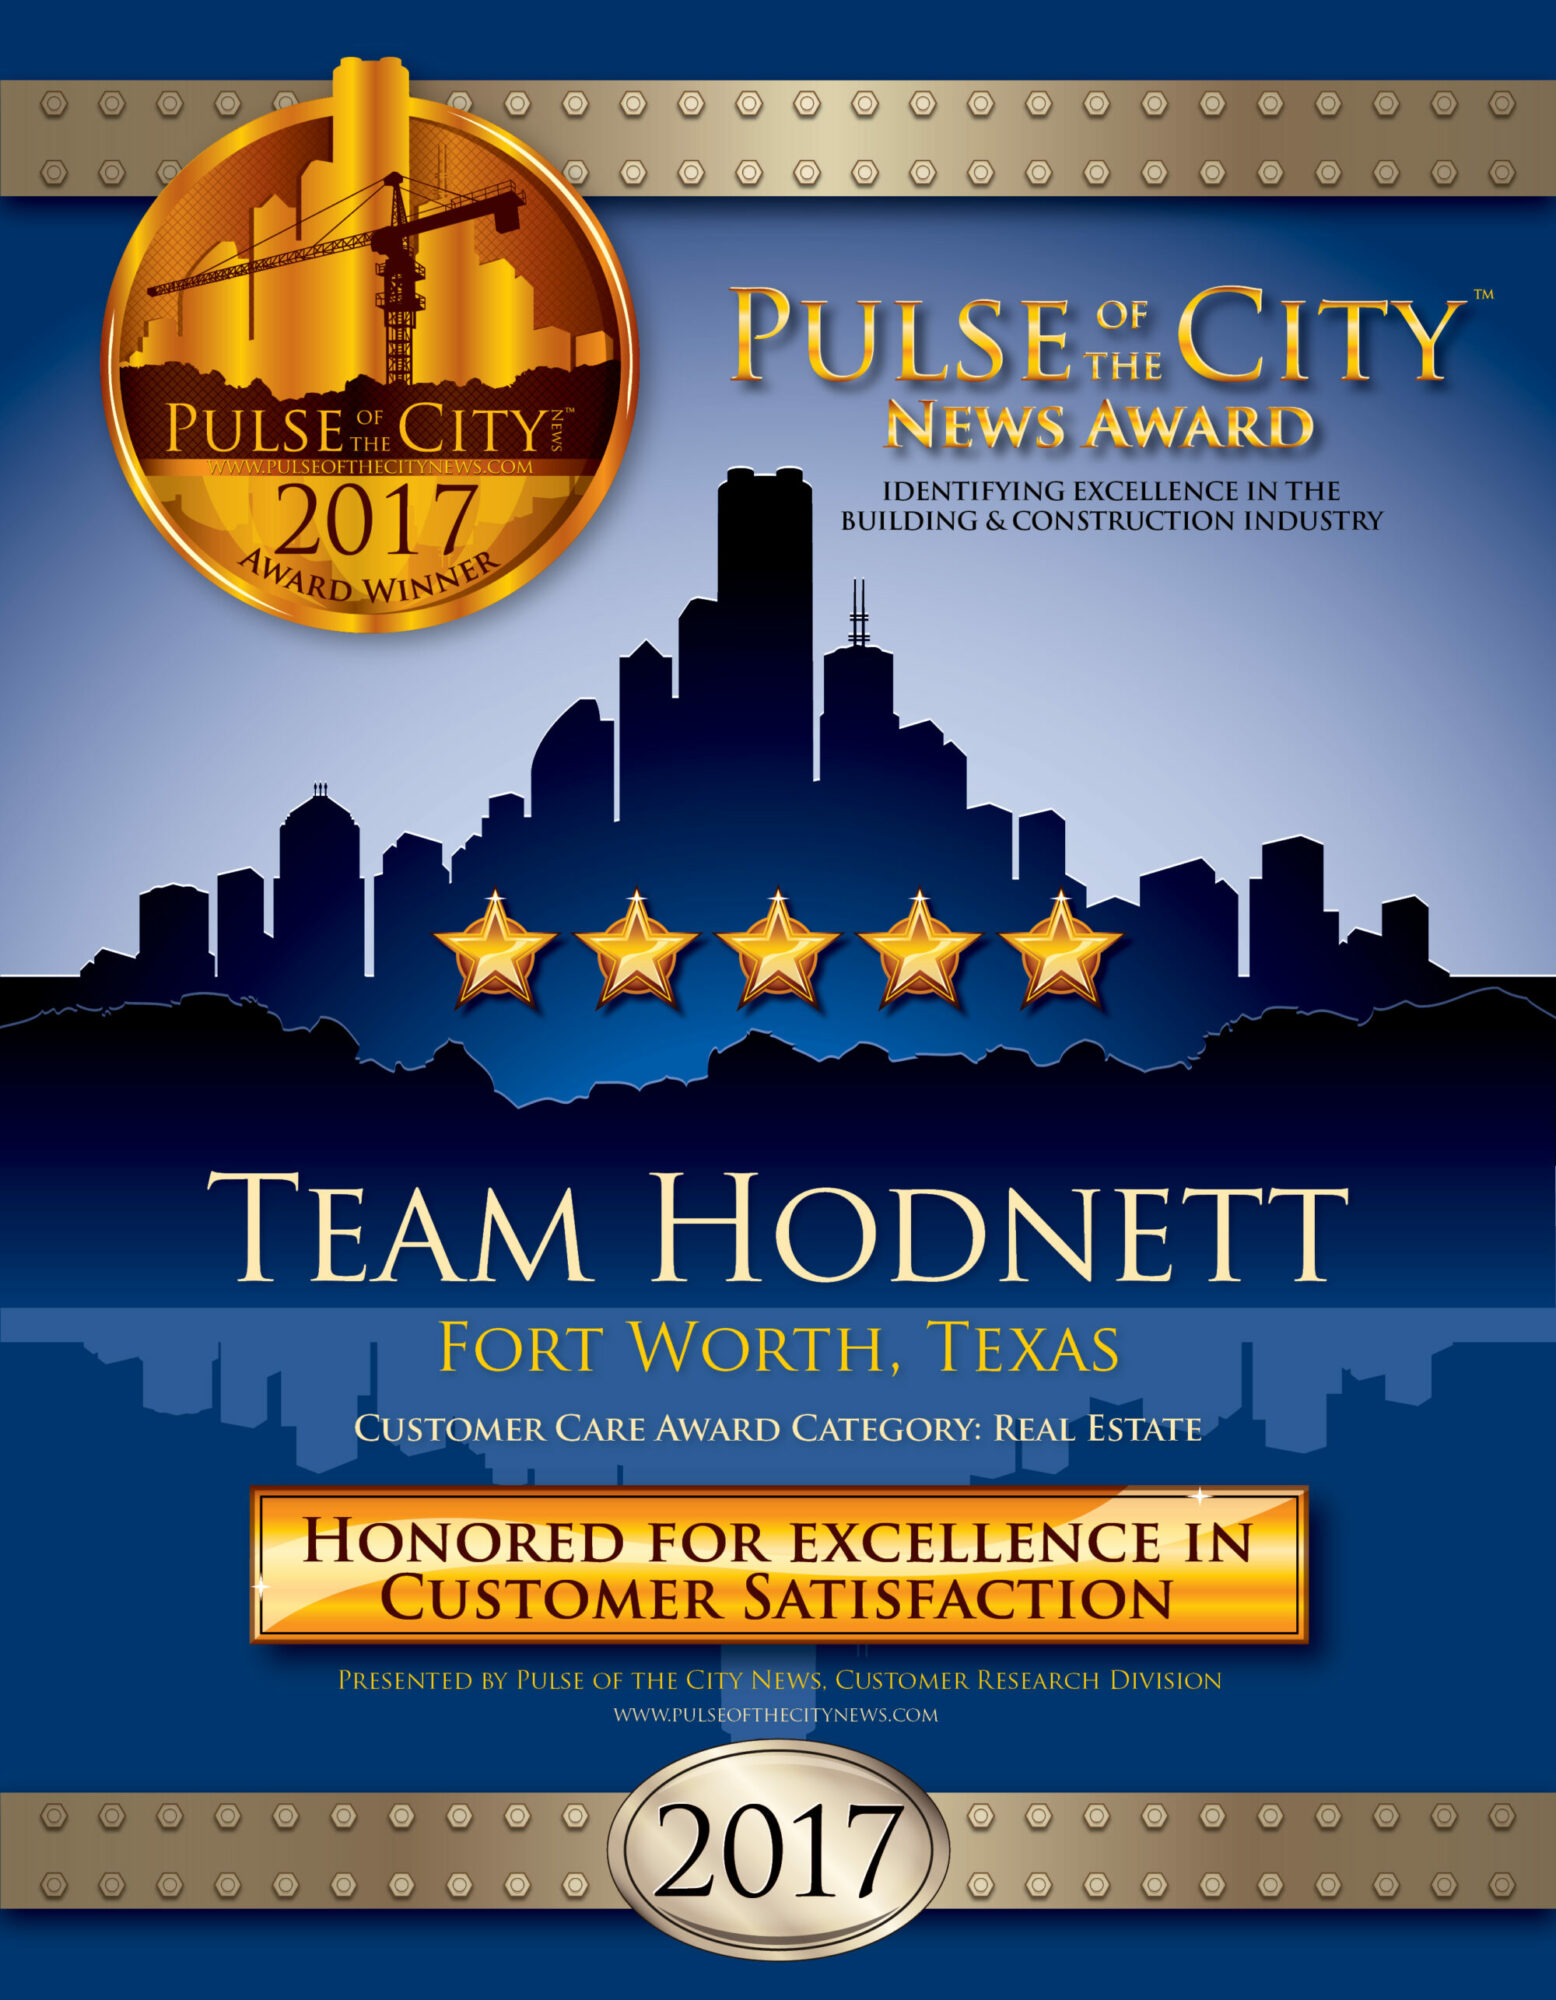 Pulse of the City News 2017 Award Winner, Team Hodnett